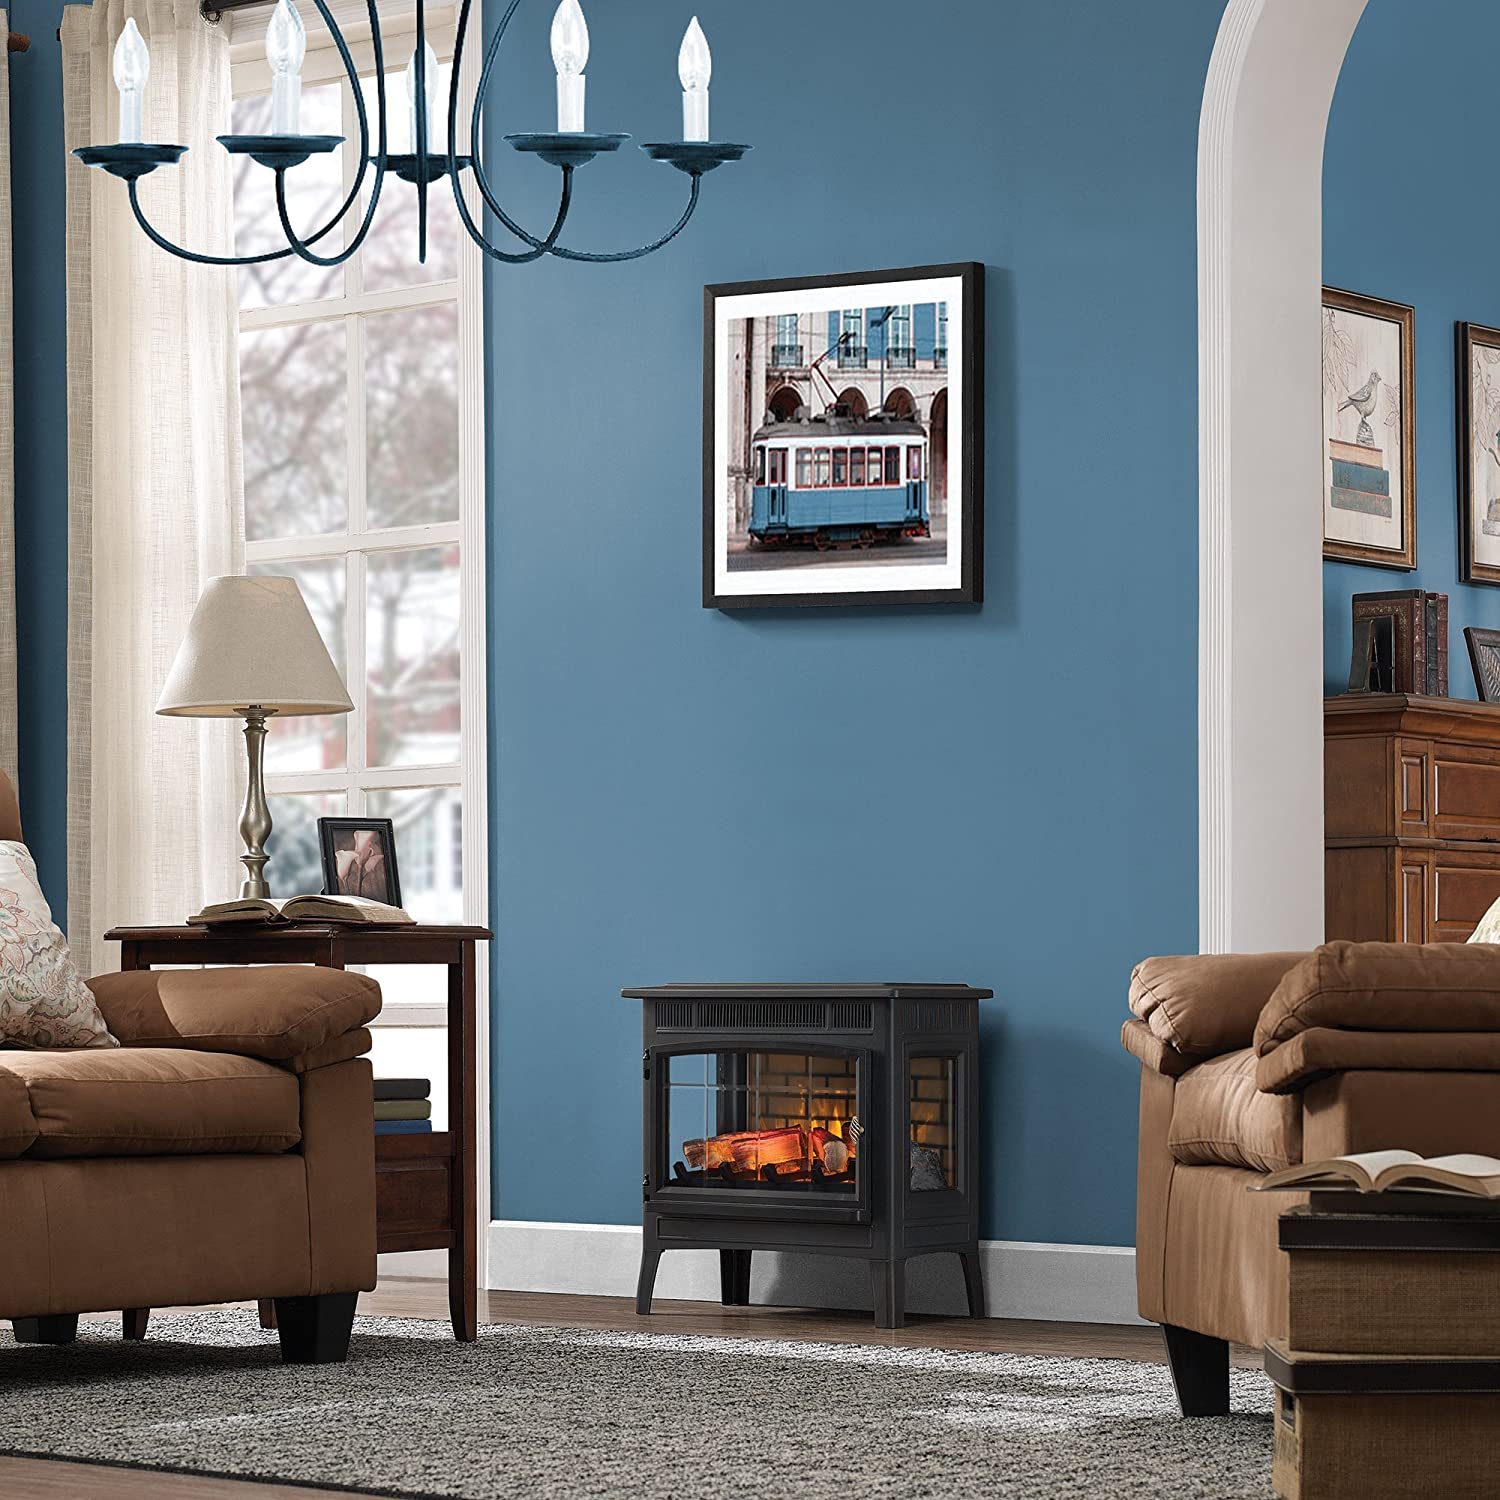 Duraflame Electric Heating: Does It Really Work?